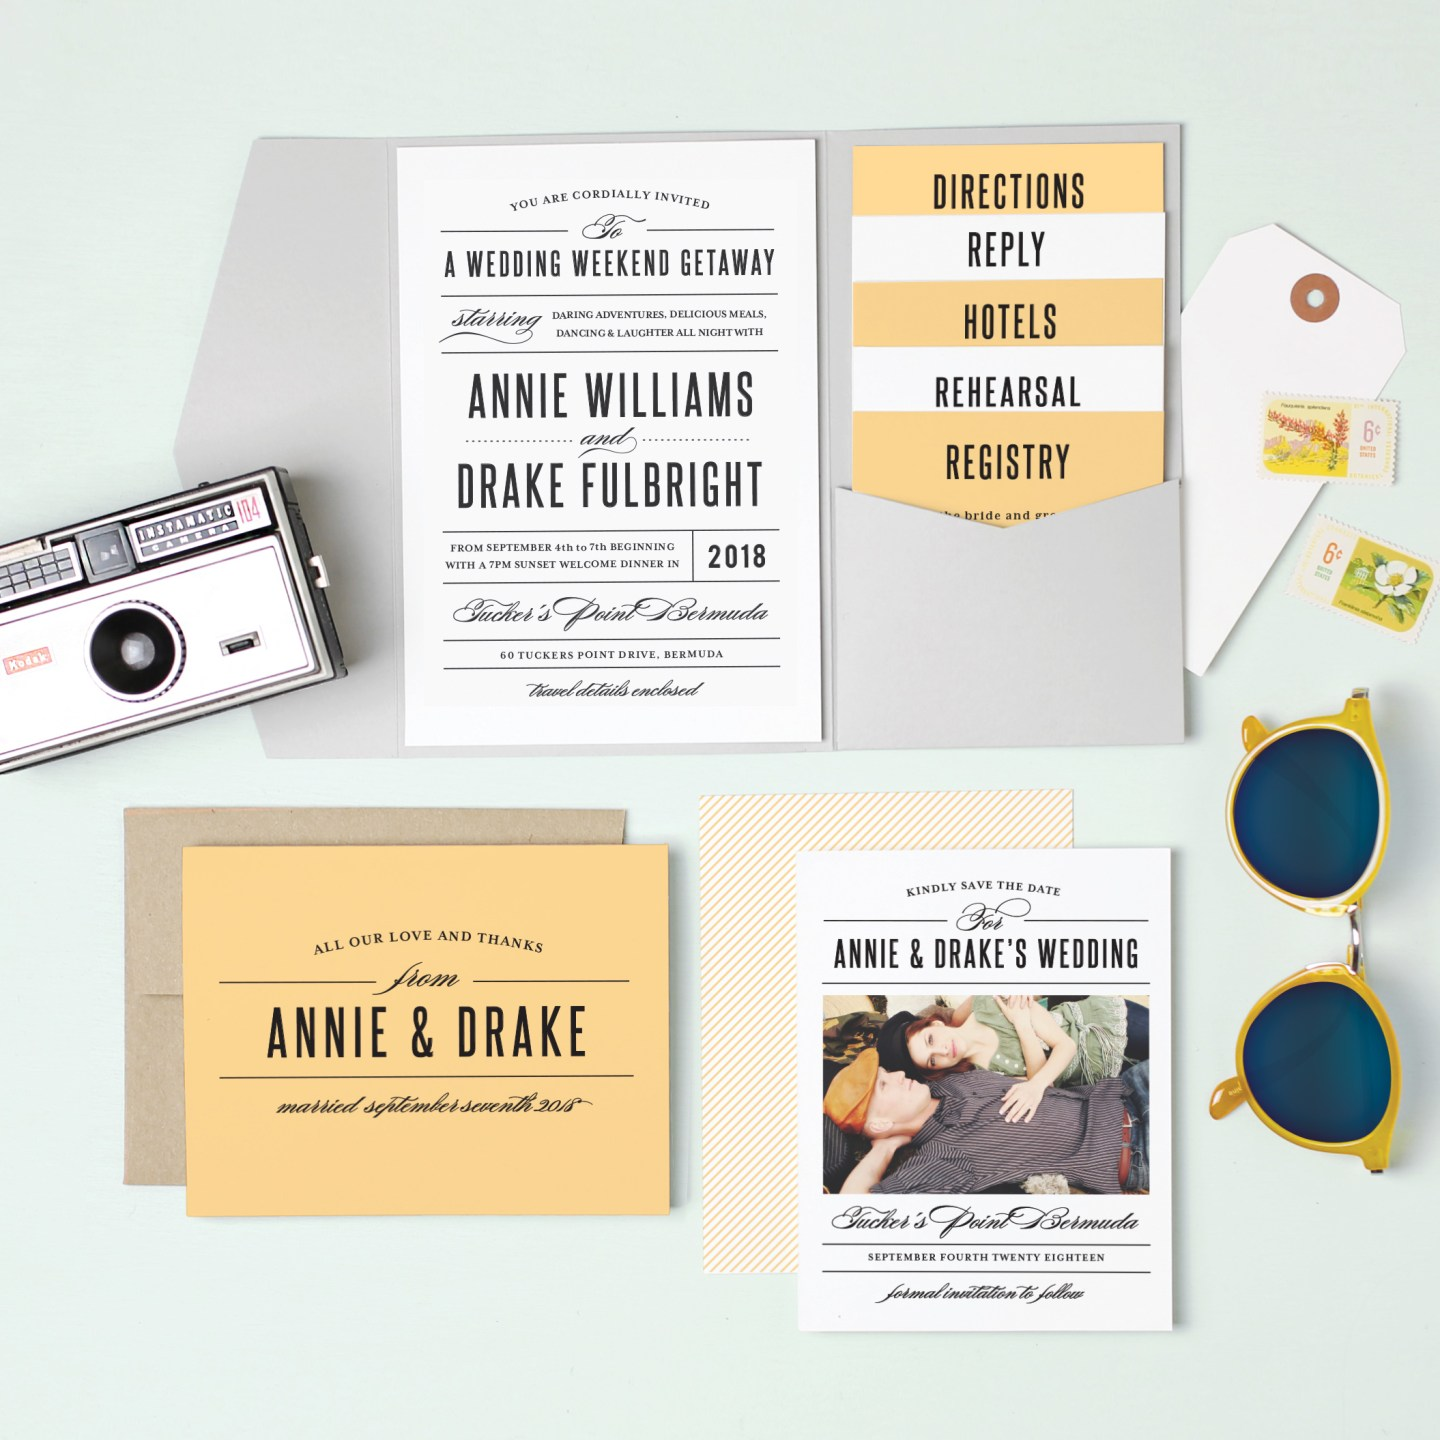 Event Branding: How To Master That Basic Invite